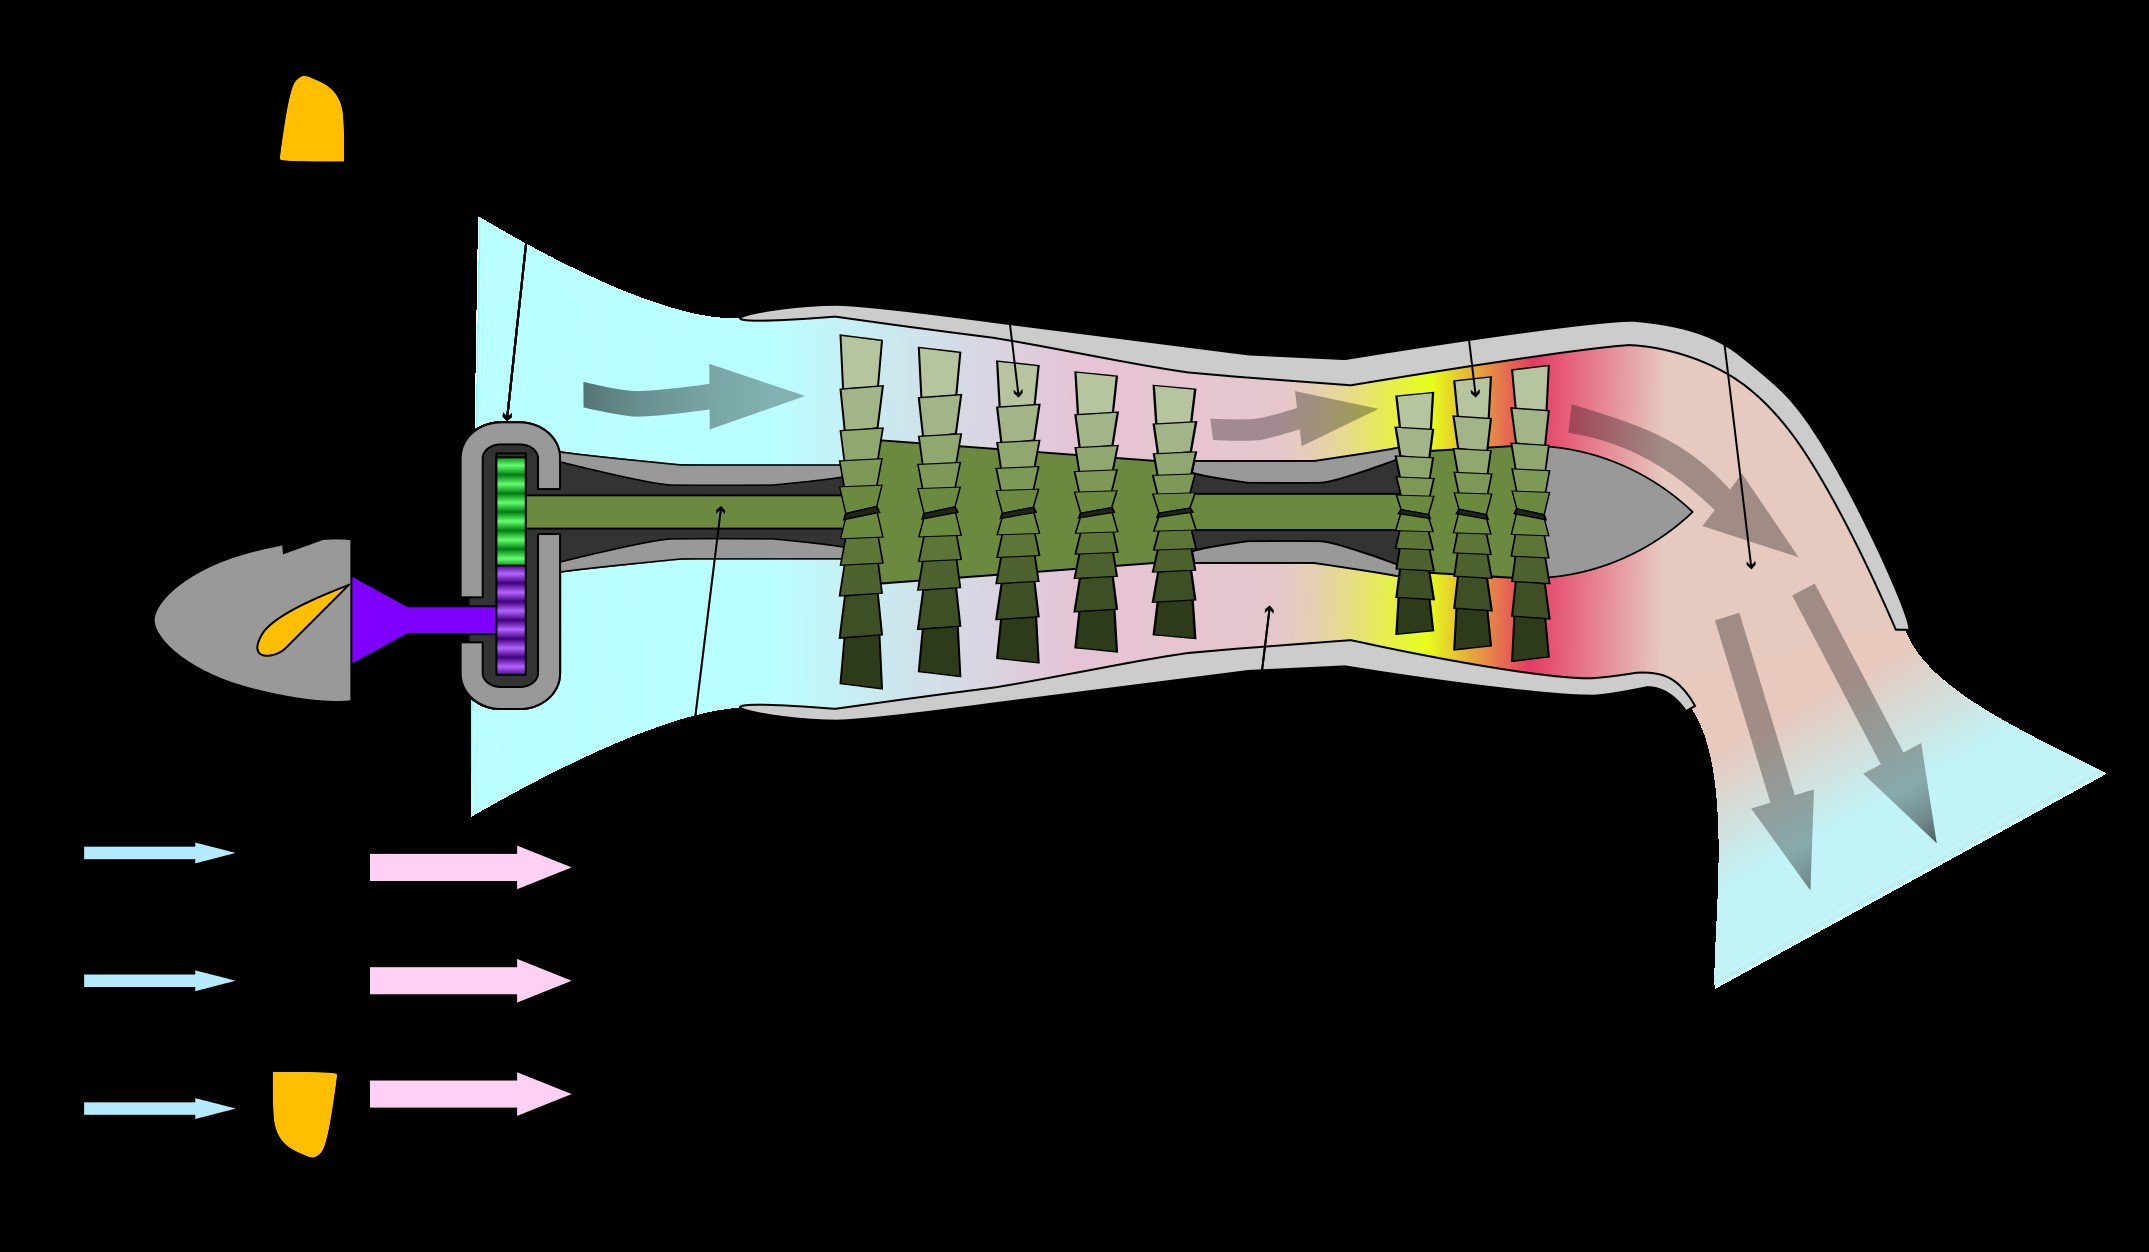 Turboshaft Engine Diagram What is the Difference Between A Turbofan and A Turboprop Engine Of Turboshaft Engine Diagram